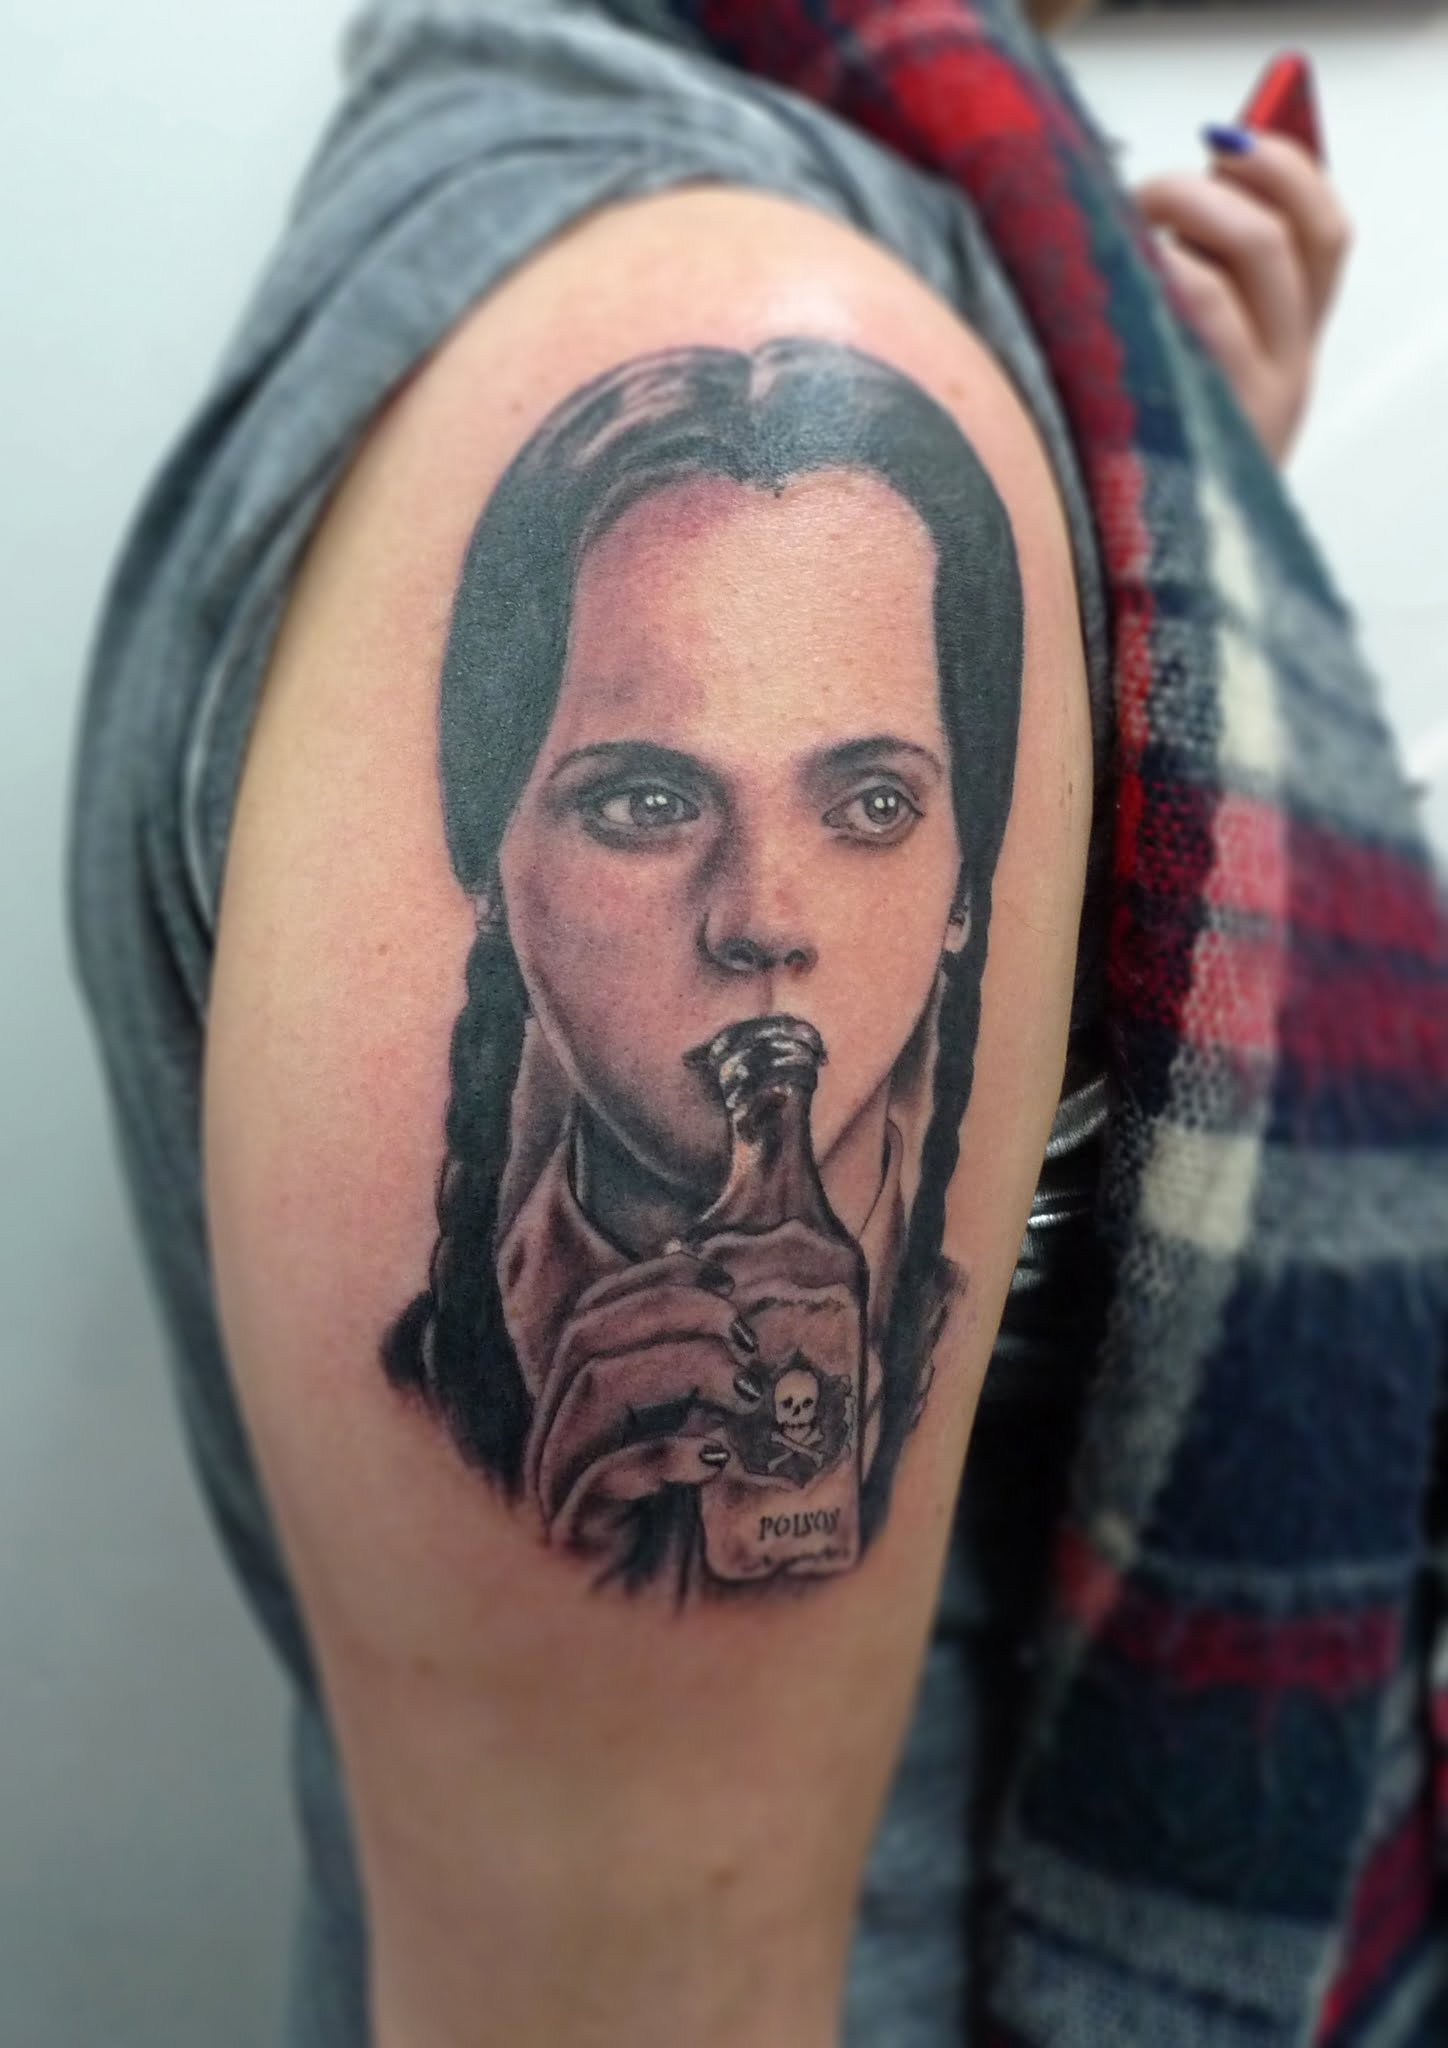 Wednesday Adams tattoo